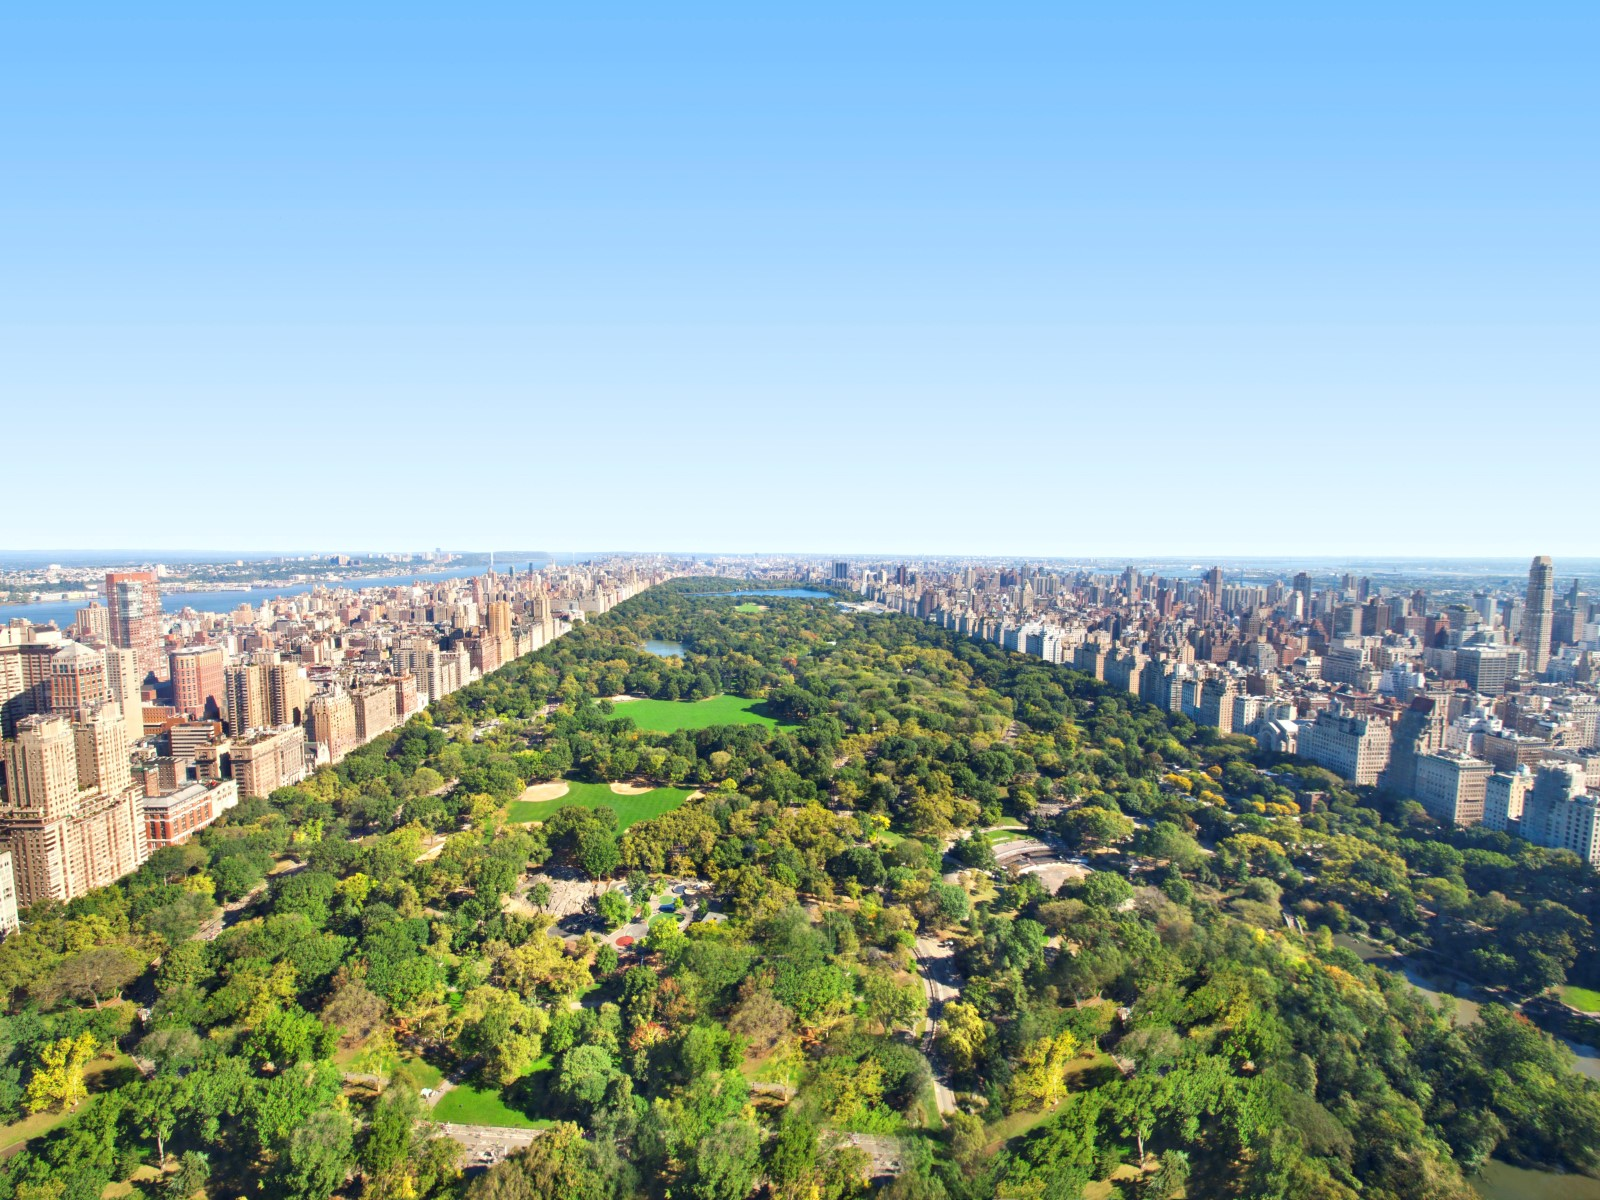 Condominium for Sale at 57 Linear Ft Overlooking Central Park 157 West 57th Street Apt 62a New York, New York 10023 United States